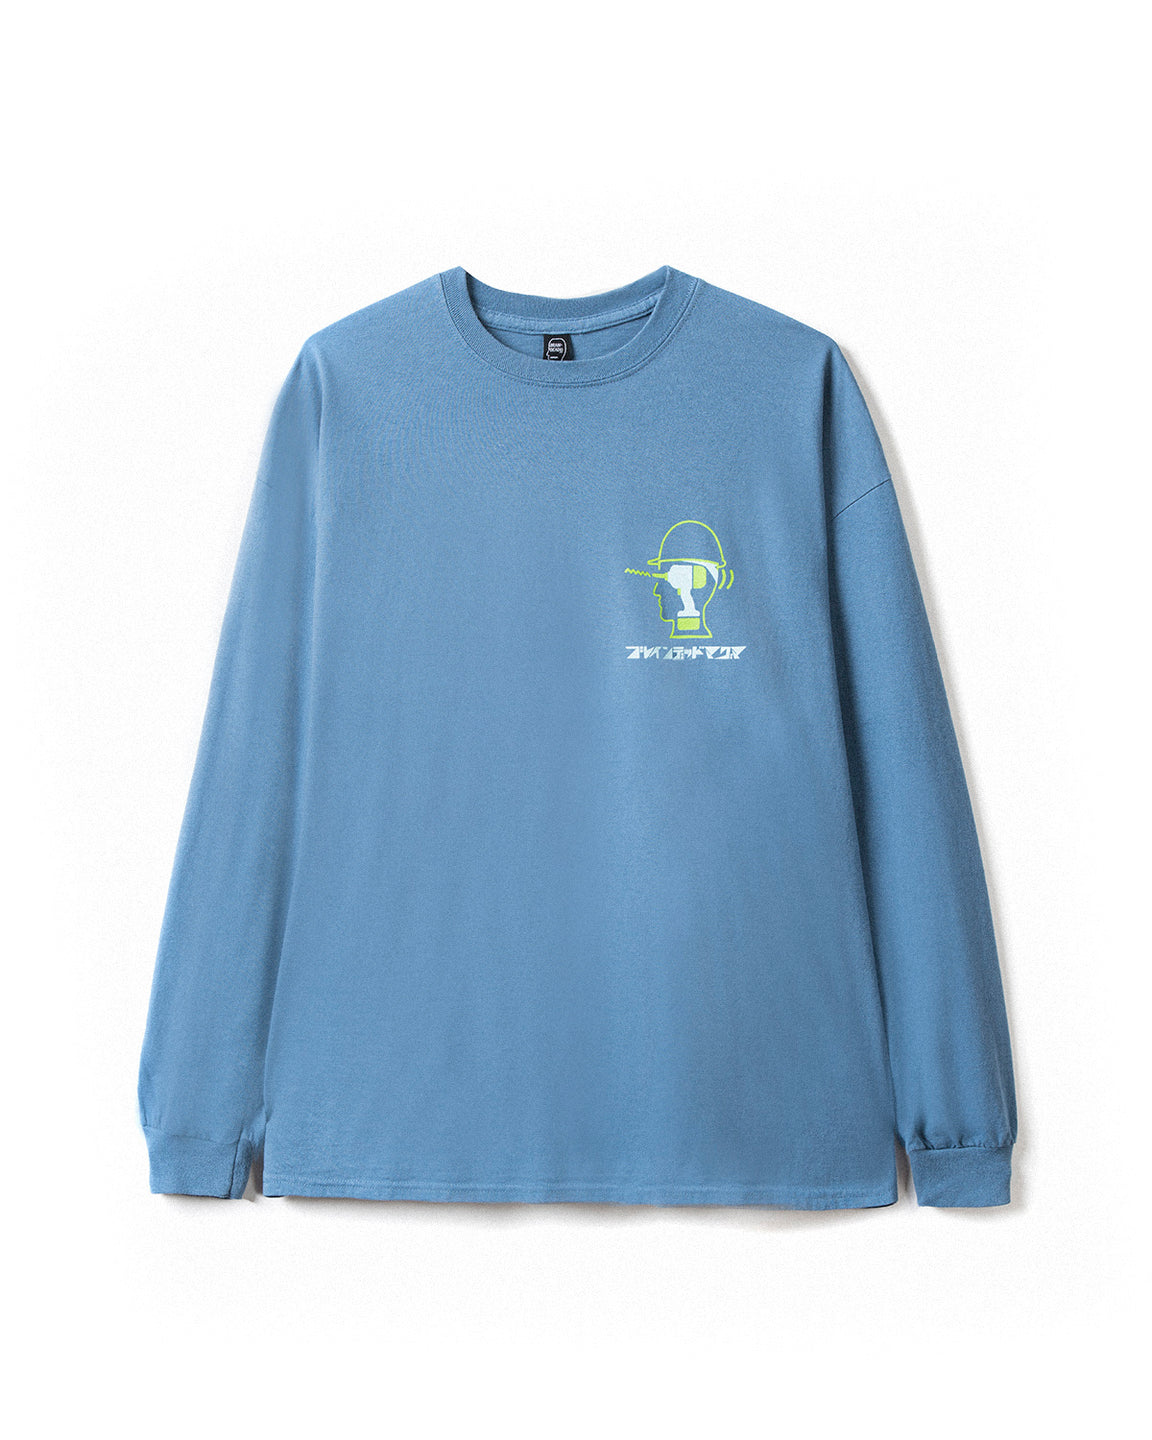 Magma x Braindead Long Sleeve Tee - Indigo